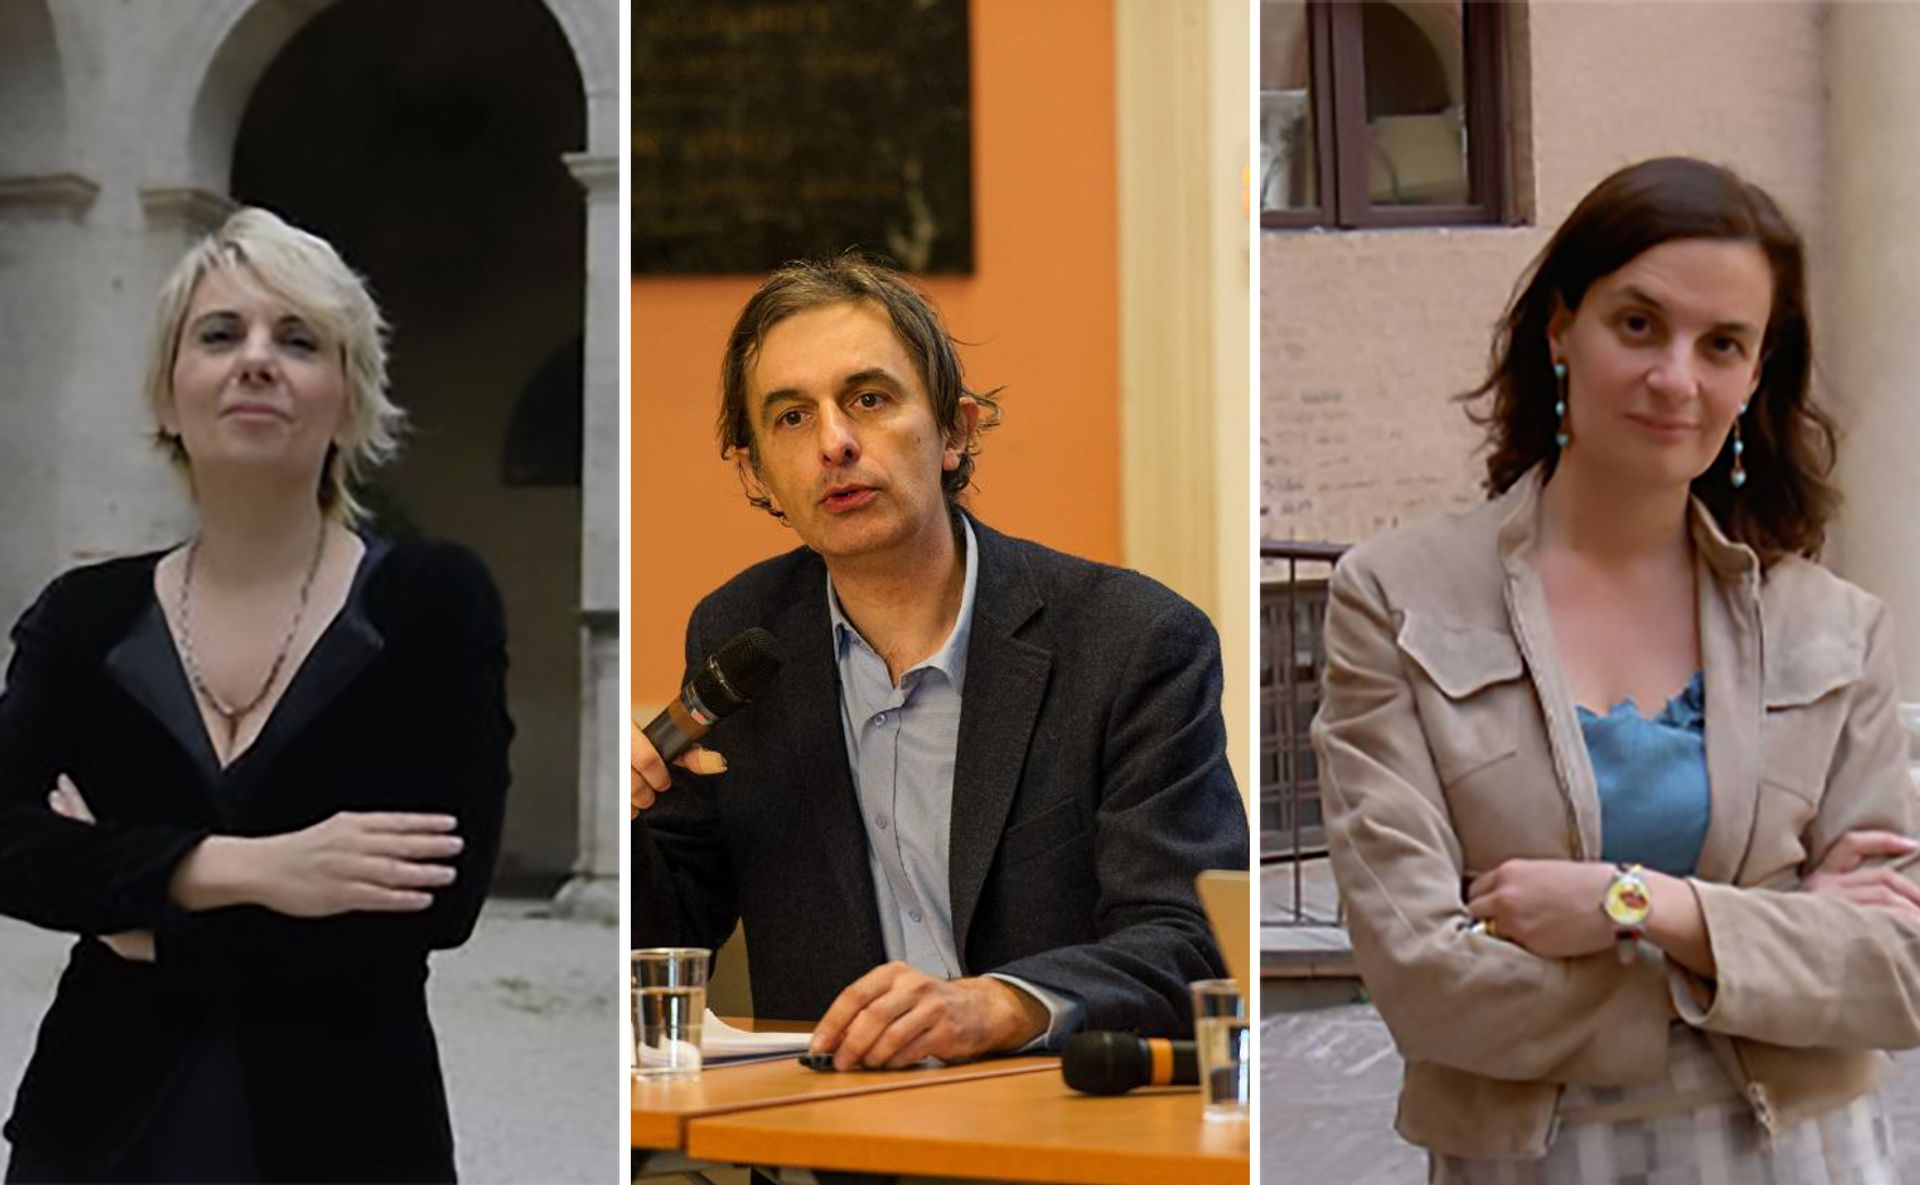 Edith Gabrielli (left) and Francesca Cappelletti (right) are two of the six women hired while Stéphane Verger (centre) is the only foreigner Verger: © Romain Étienne, Item, 2016